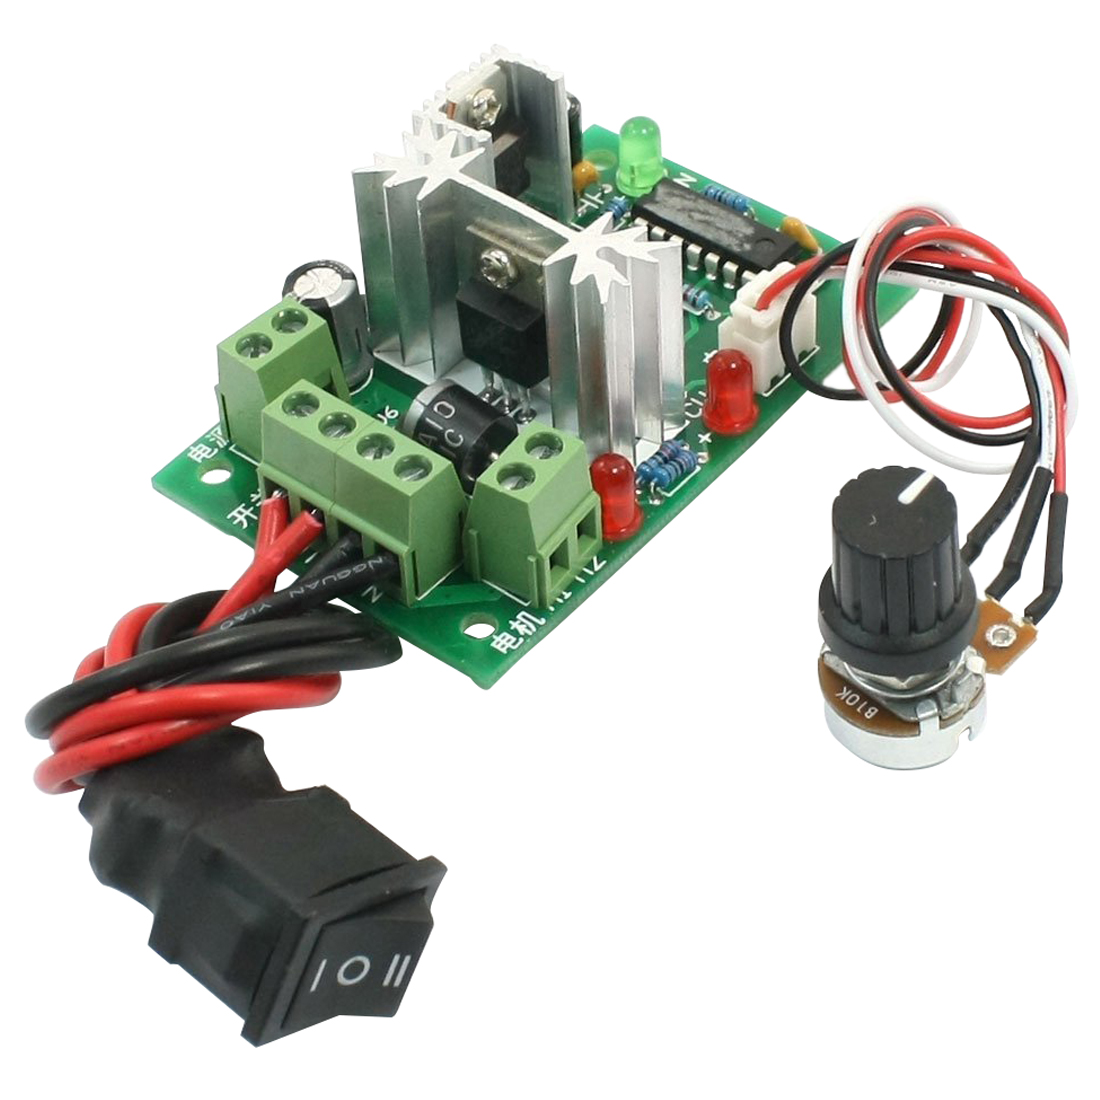 12V 24V 30V 120W PWM Adjustable Volt DC Motor Speed Controller CCM2